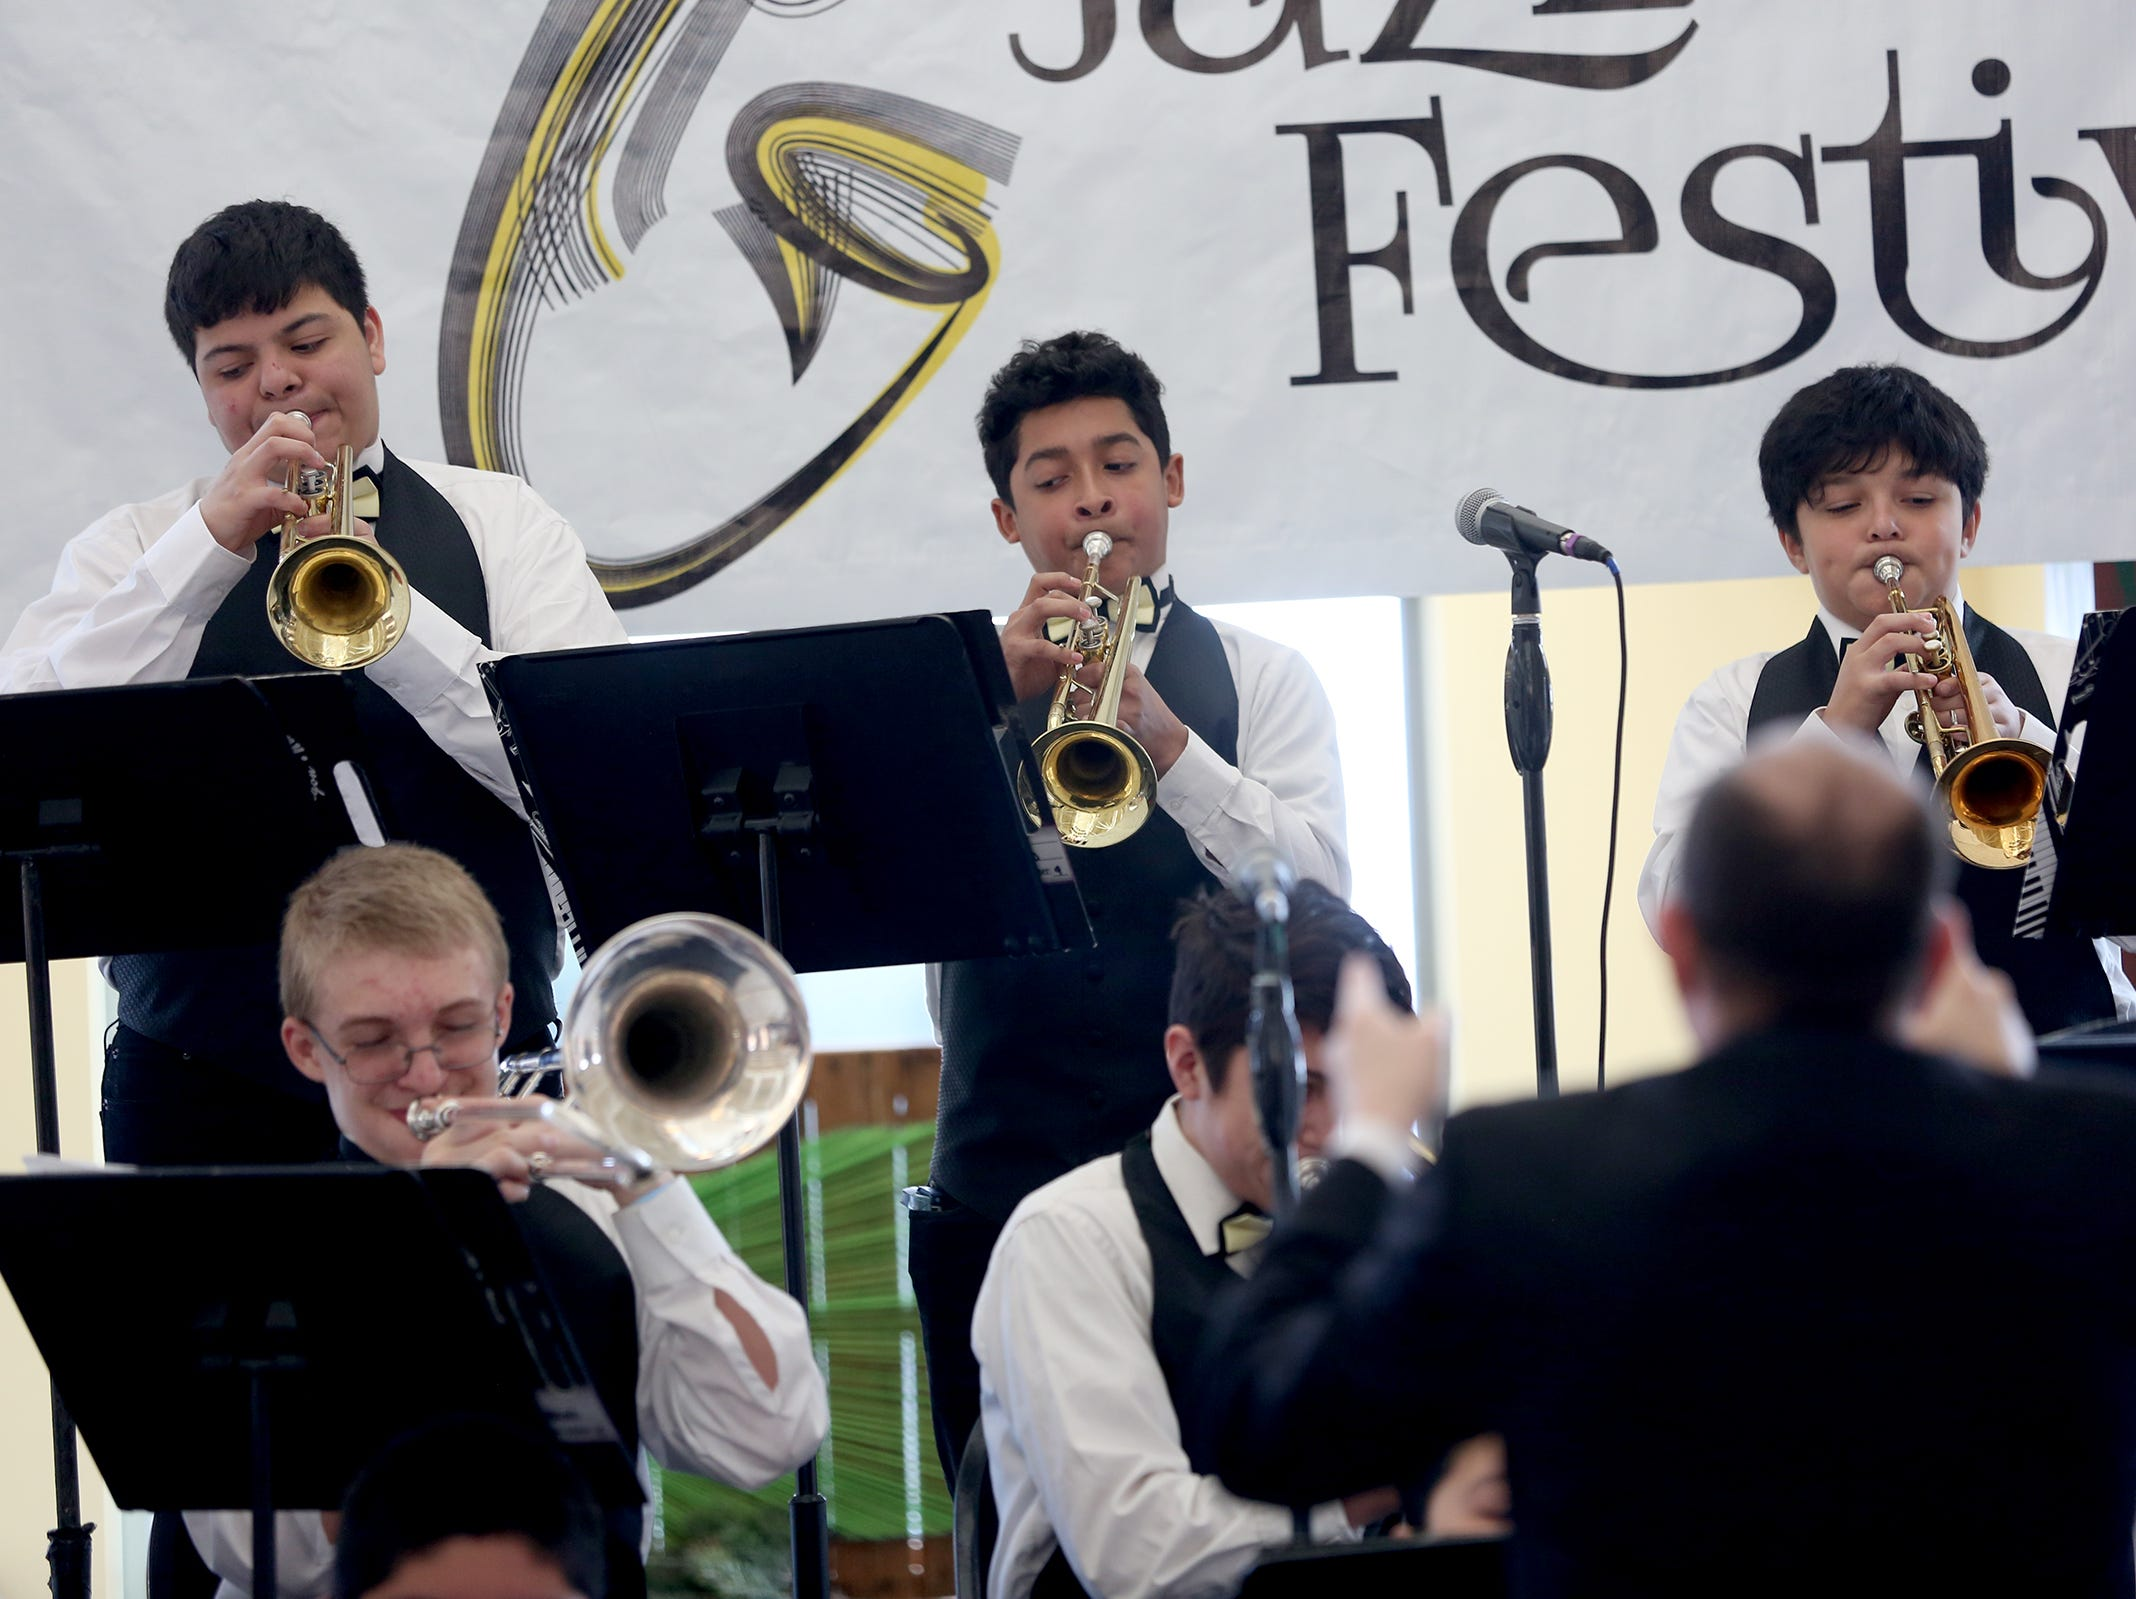 Waldo Middle School students, under the direction of Brett Randolph, perform at the annual West Salem Jazz Festival at West Salem High School on Saturday, Feb. 9, 2019.